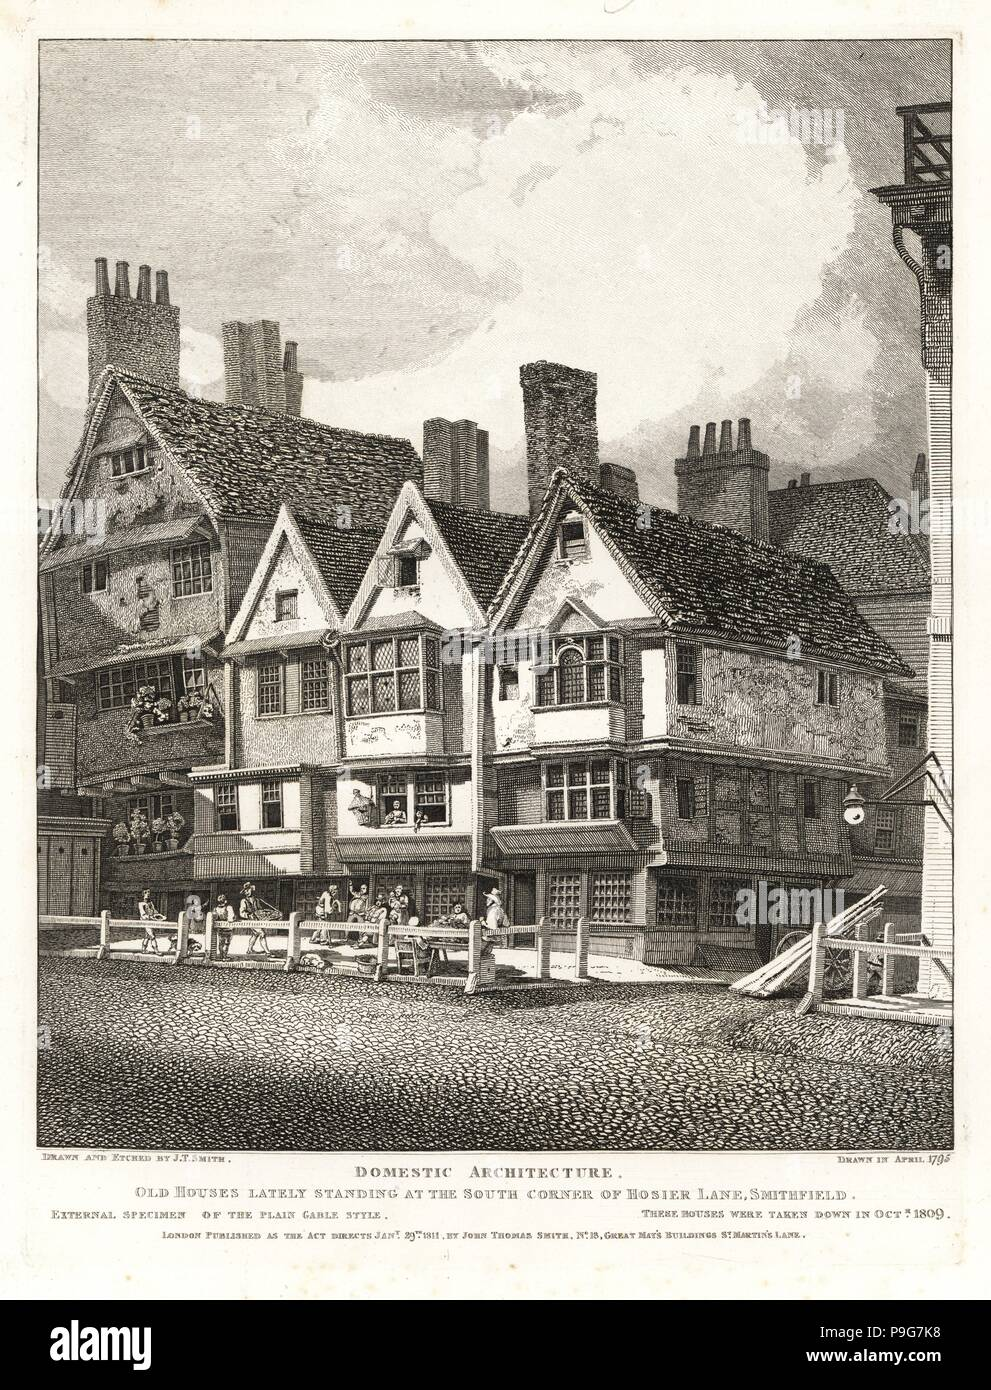 Old Stuart houses from the reign of King James I at the south corner of Hosier Lane, Smithfield, 1795. External specimen of the Plain Gable Style. Demolished 1809. Copperplate engraving drawn and etched by John Thomas Smith from his Topography of London, 1811. - Stock Image